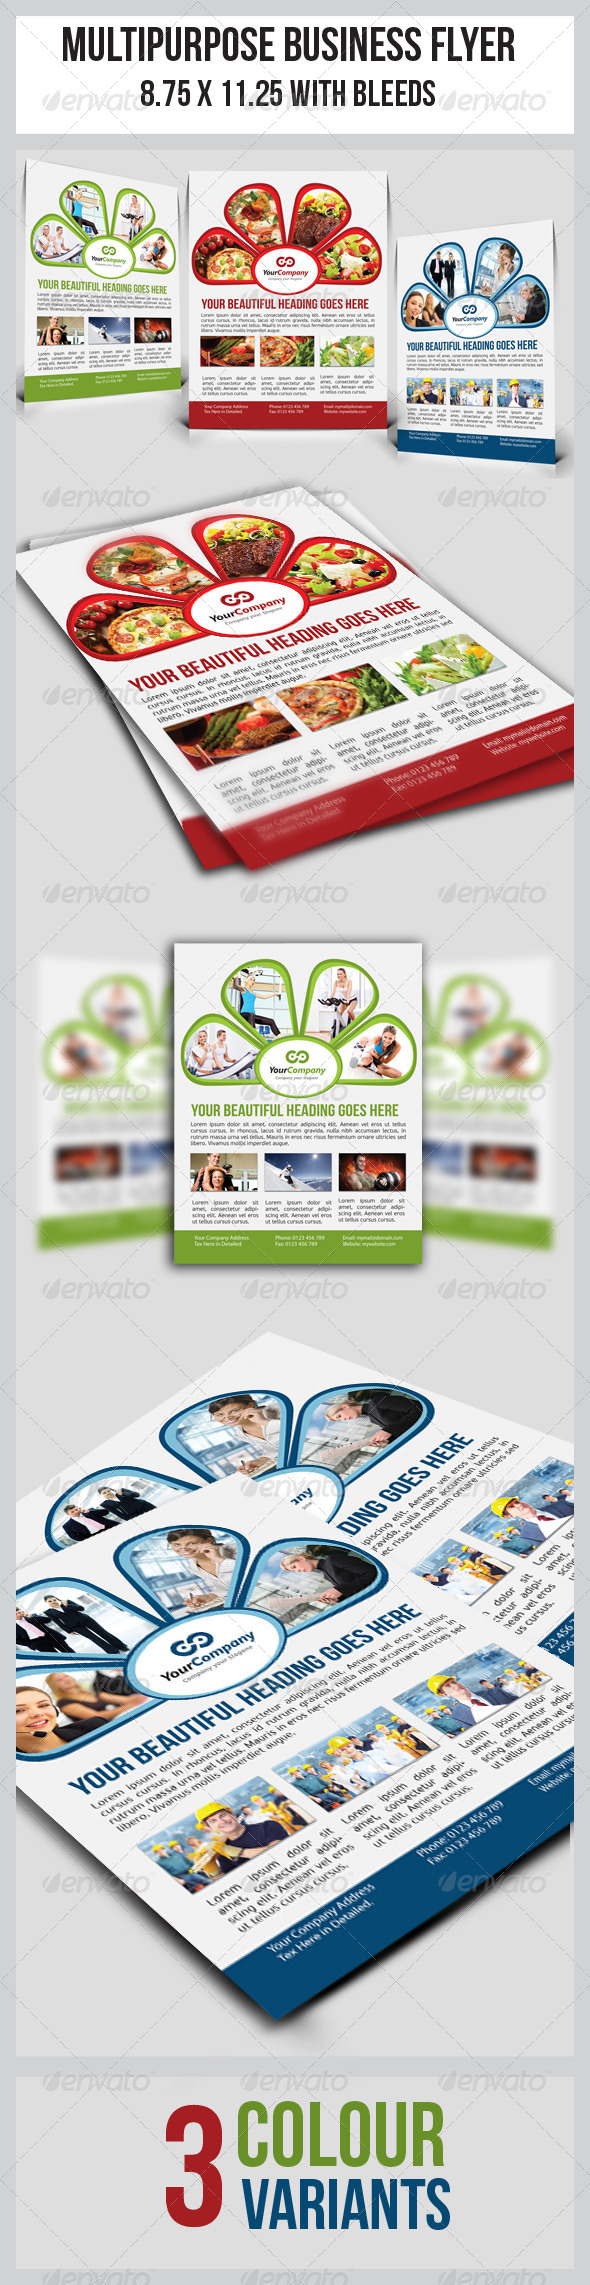 GraphicRiver Multipurpose Business Flyer 4772472